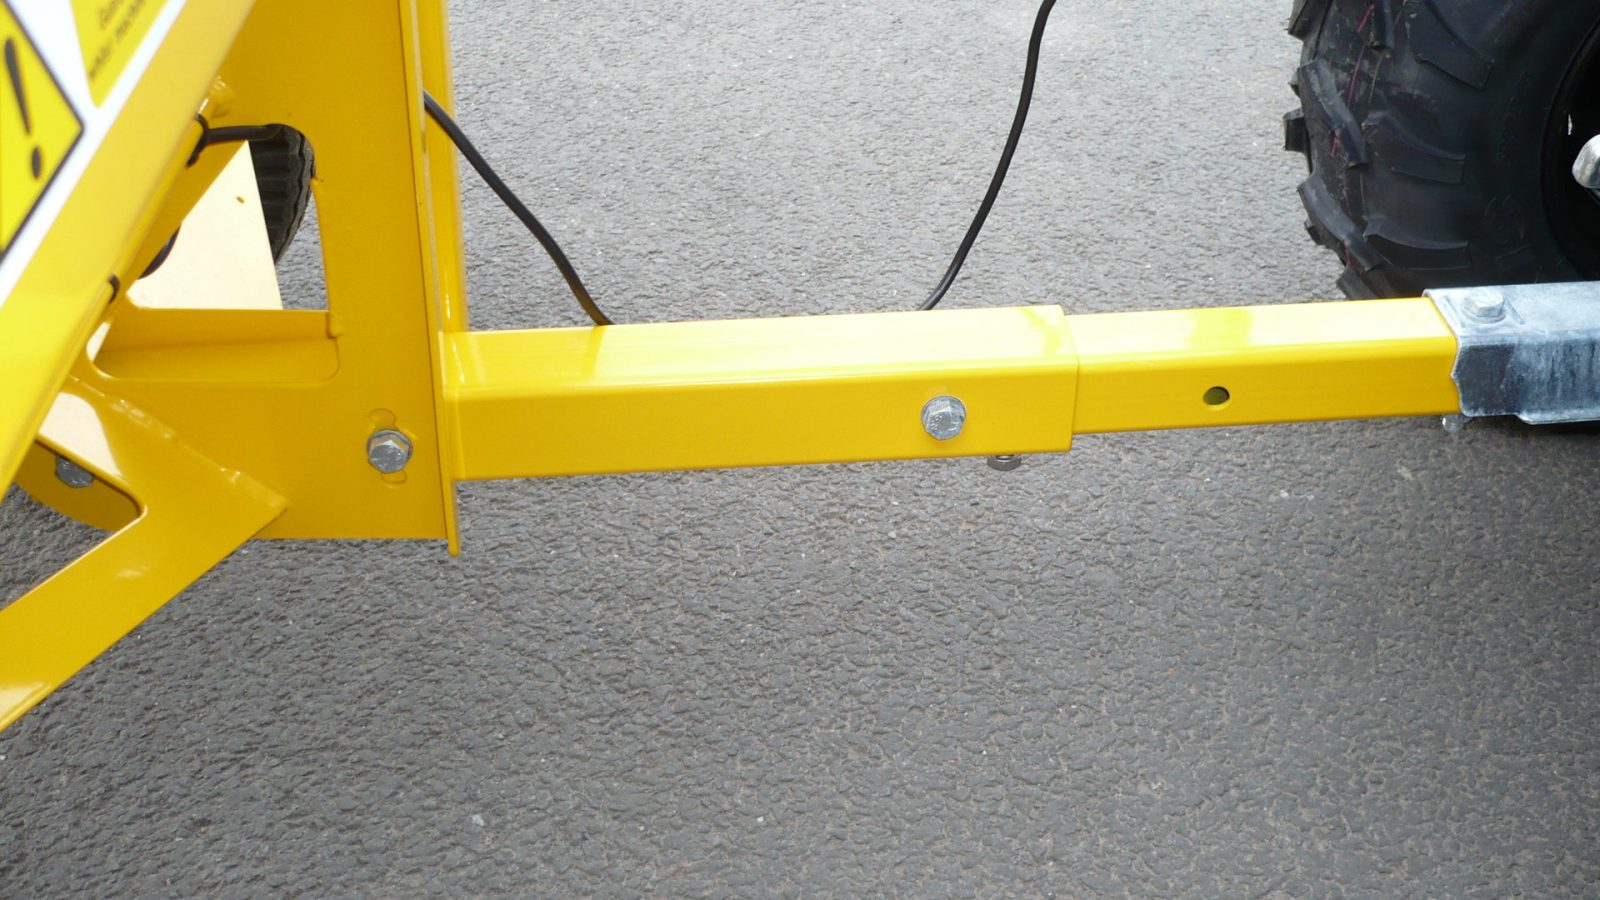 The TS80 has an extending drawbar which can be adjusted in height to suit various towing vehicles